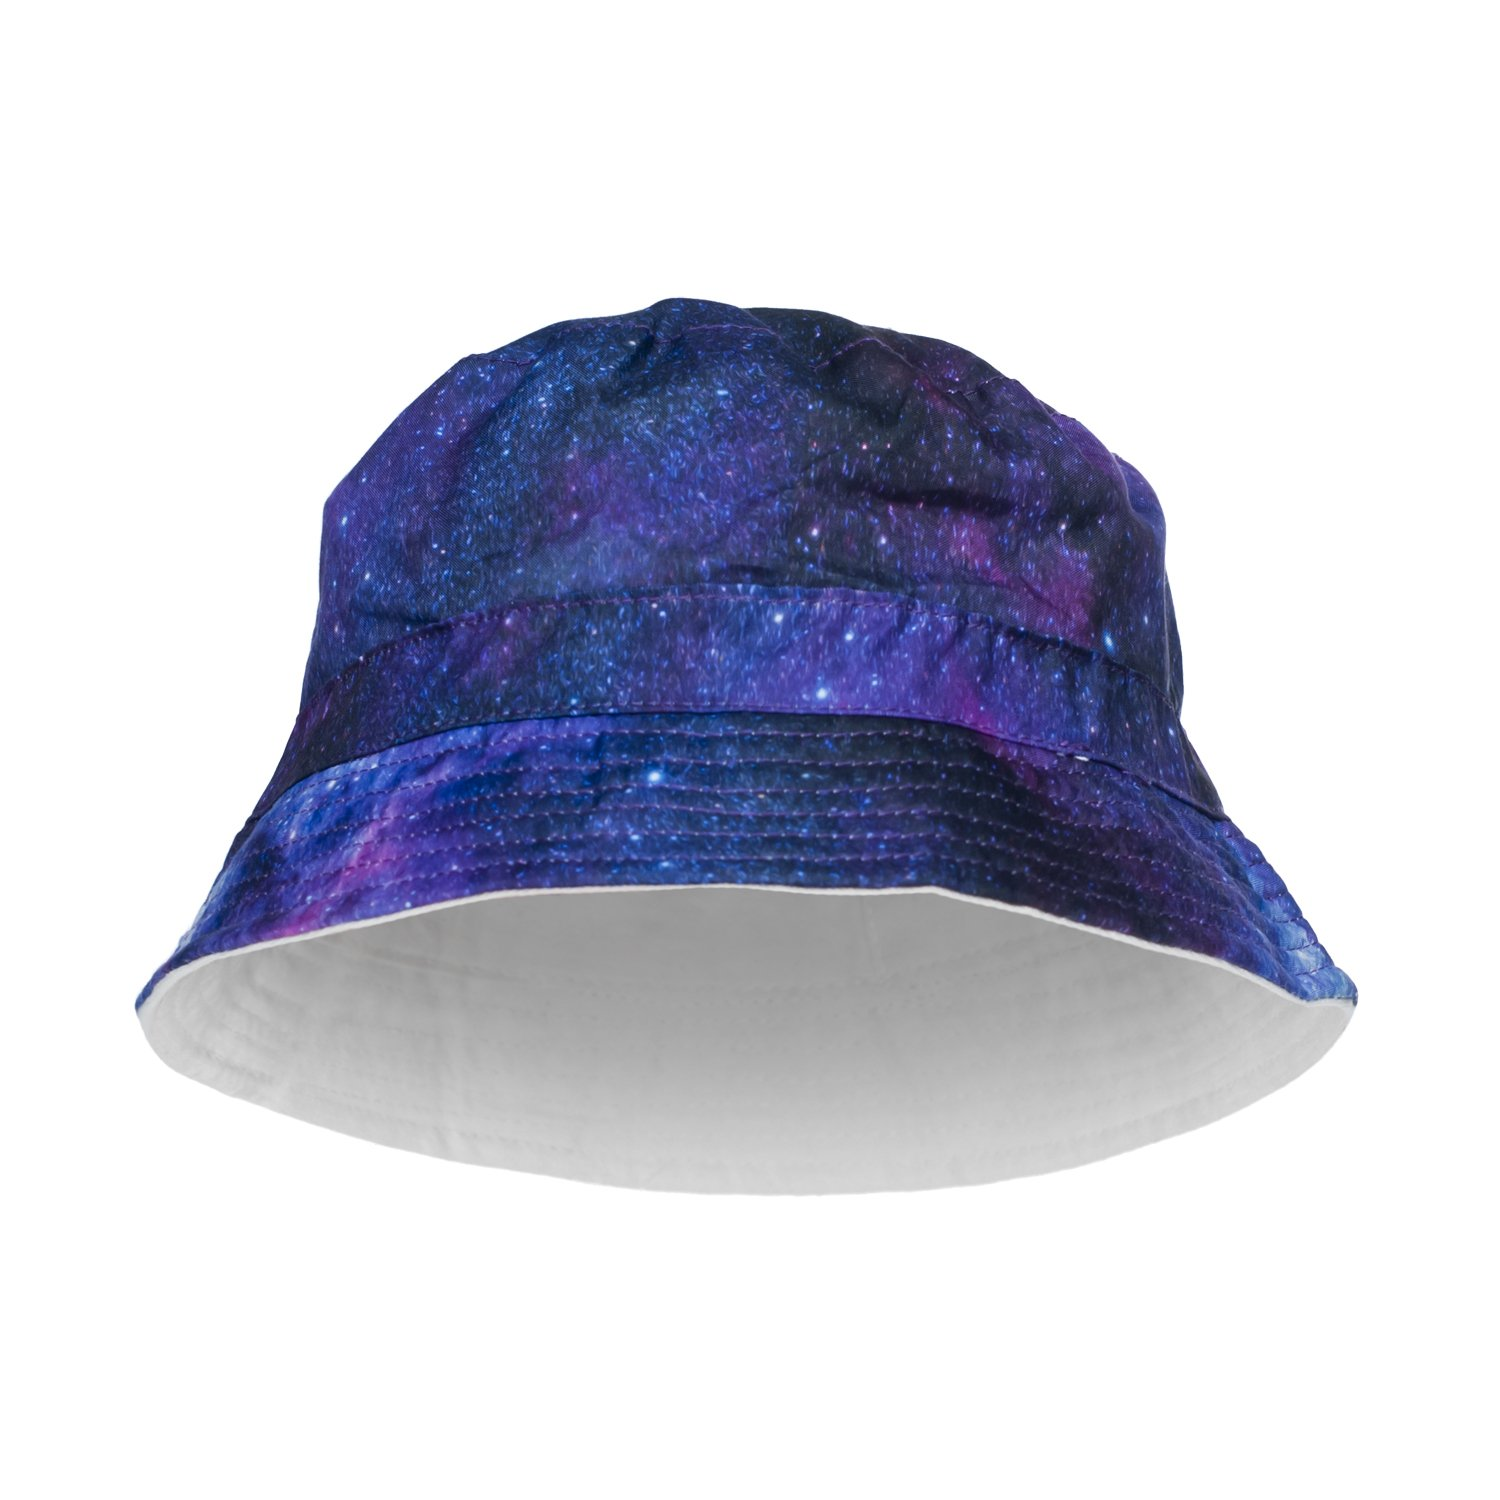 Bucket hat Full Print Bandana Fishing Bush Summer Holiday Hat Fashion Cap Party Bandana American) U1-V9T8-N4VL